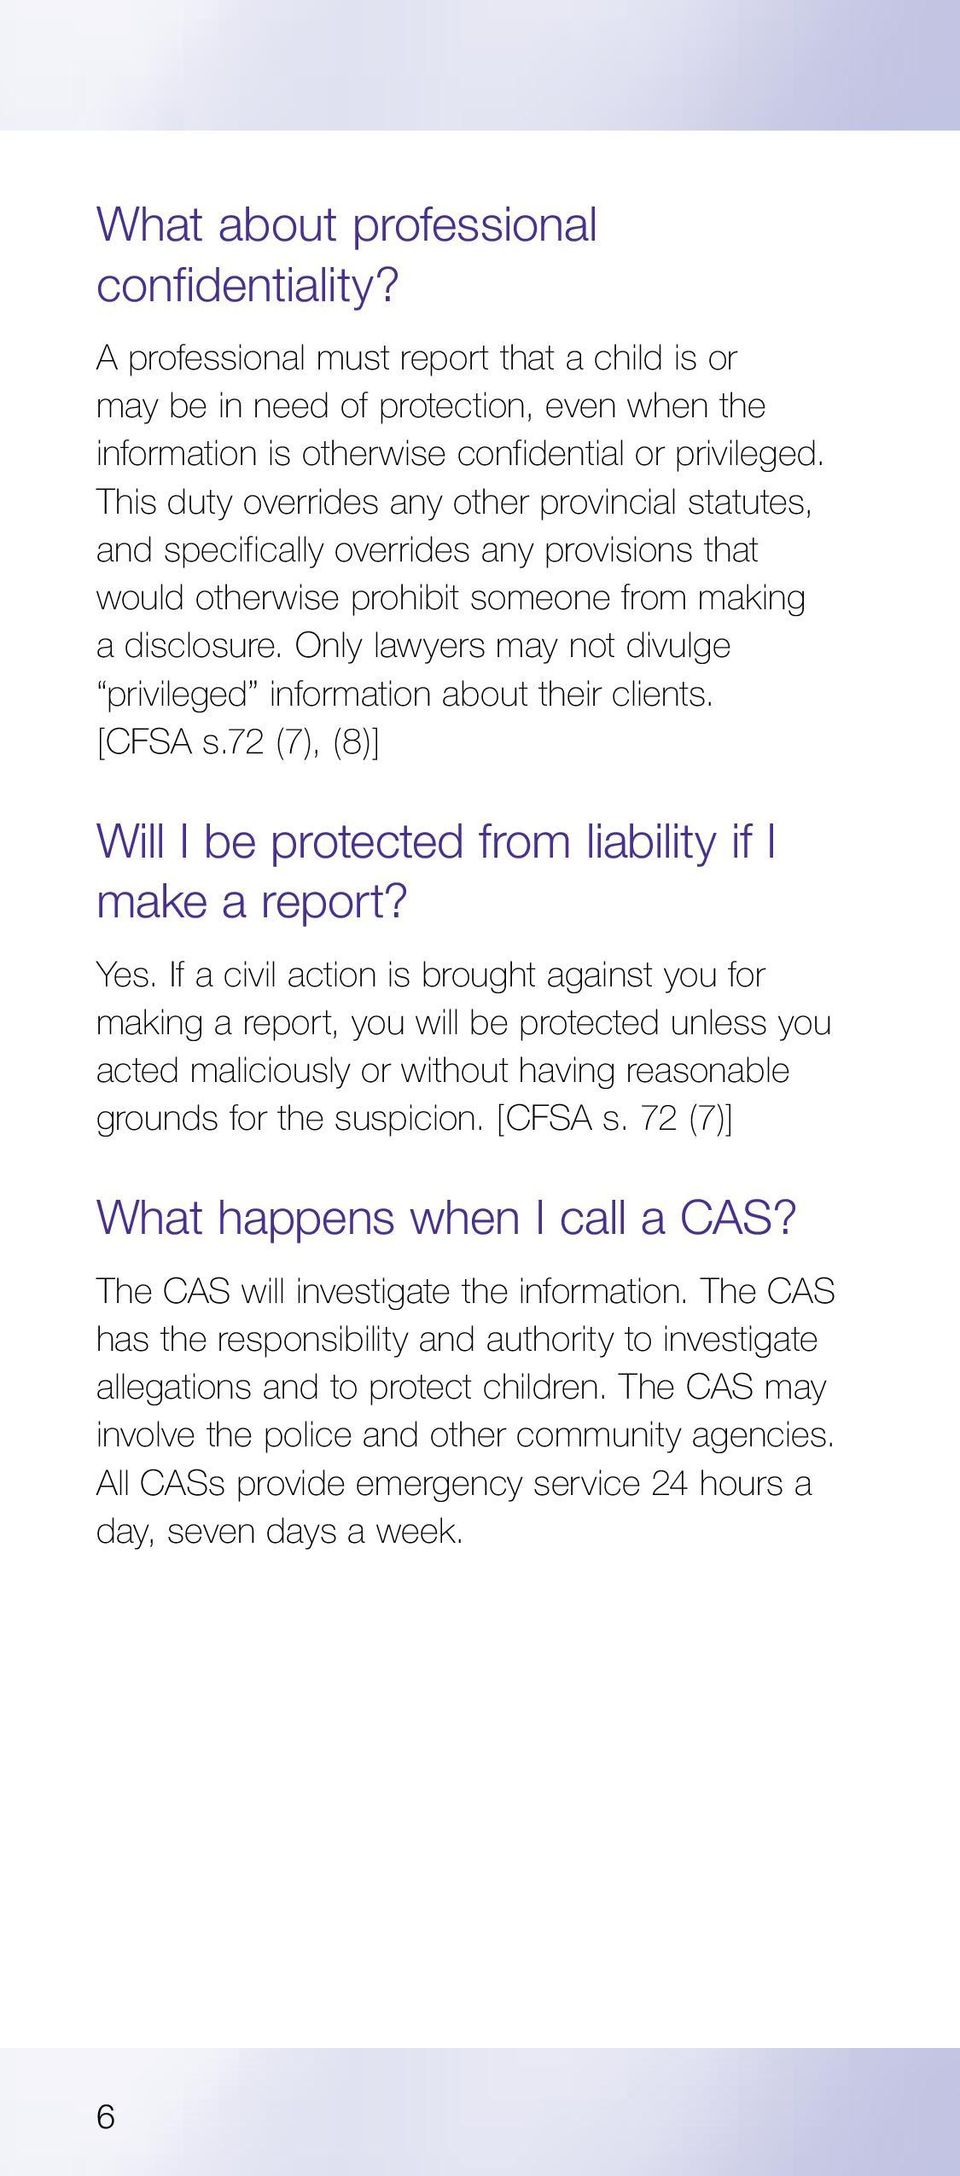 Only lawyers may not divulge privileged information about their clients. [CFSA s.72 (7), (8)] Will I be protected from liability if I make a report? Yes.